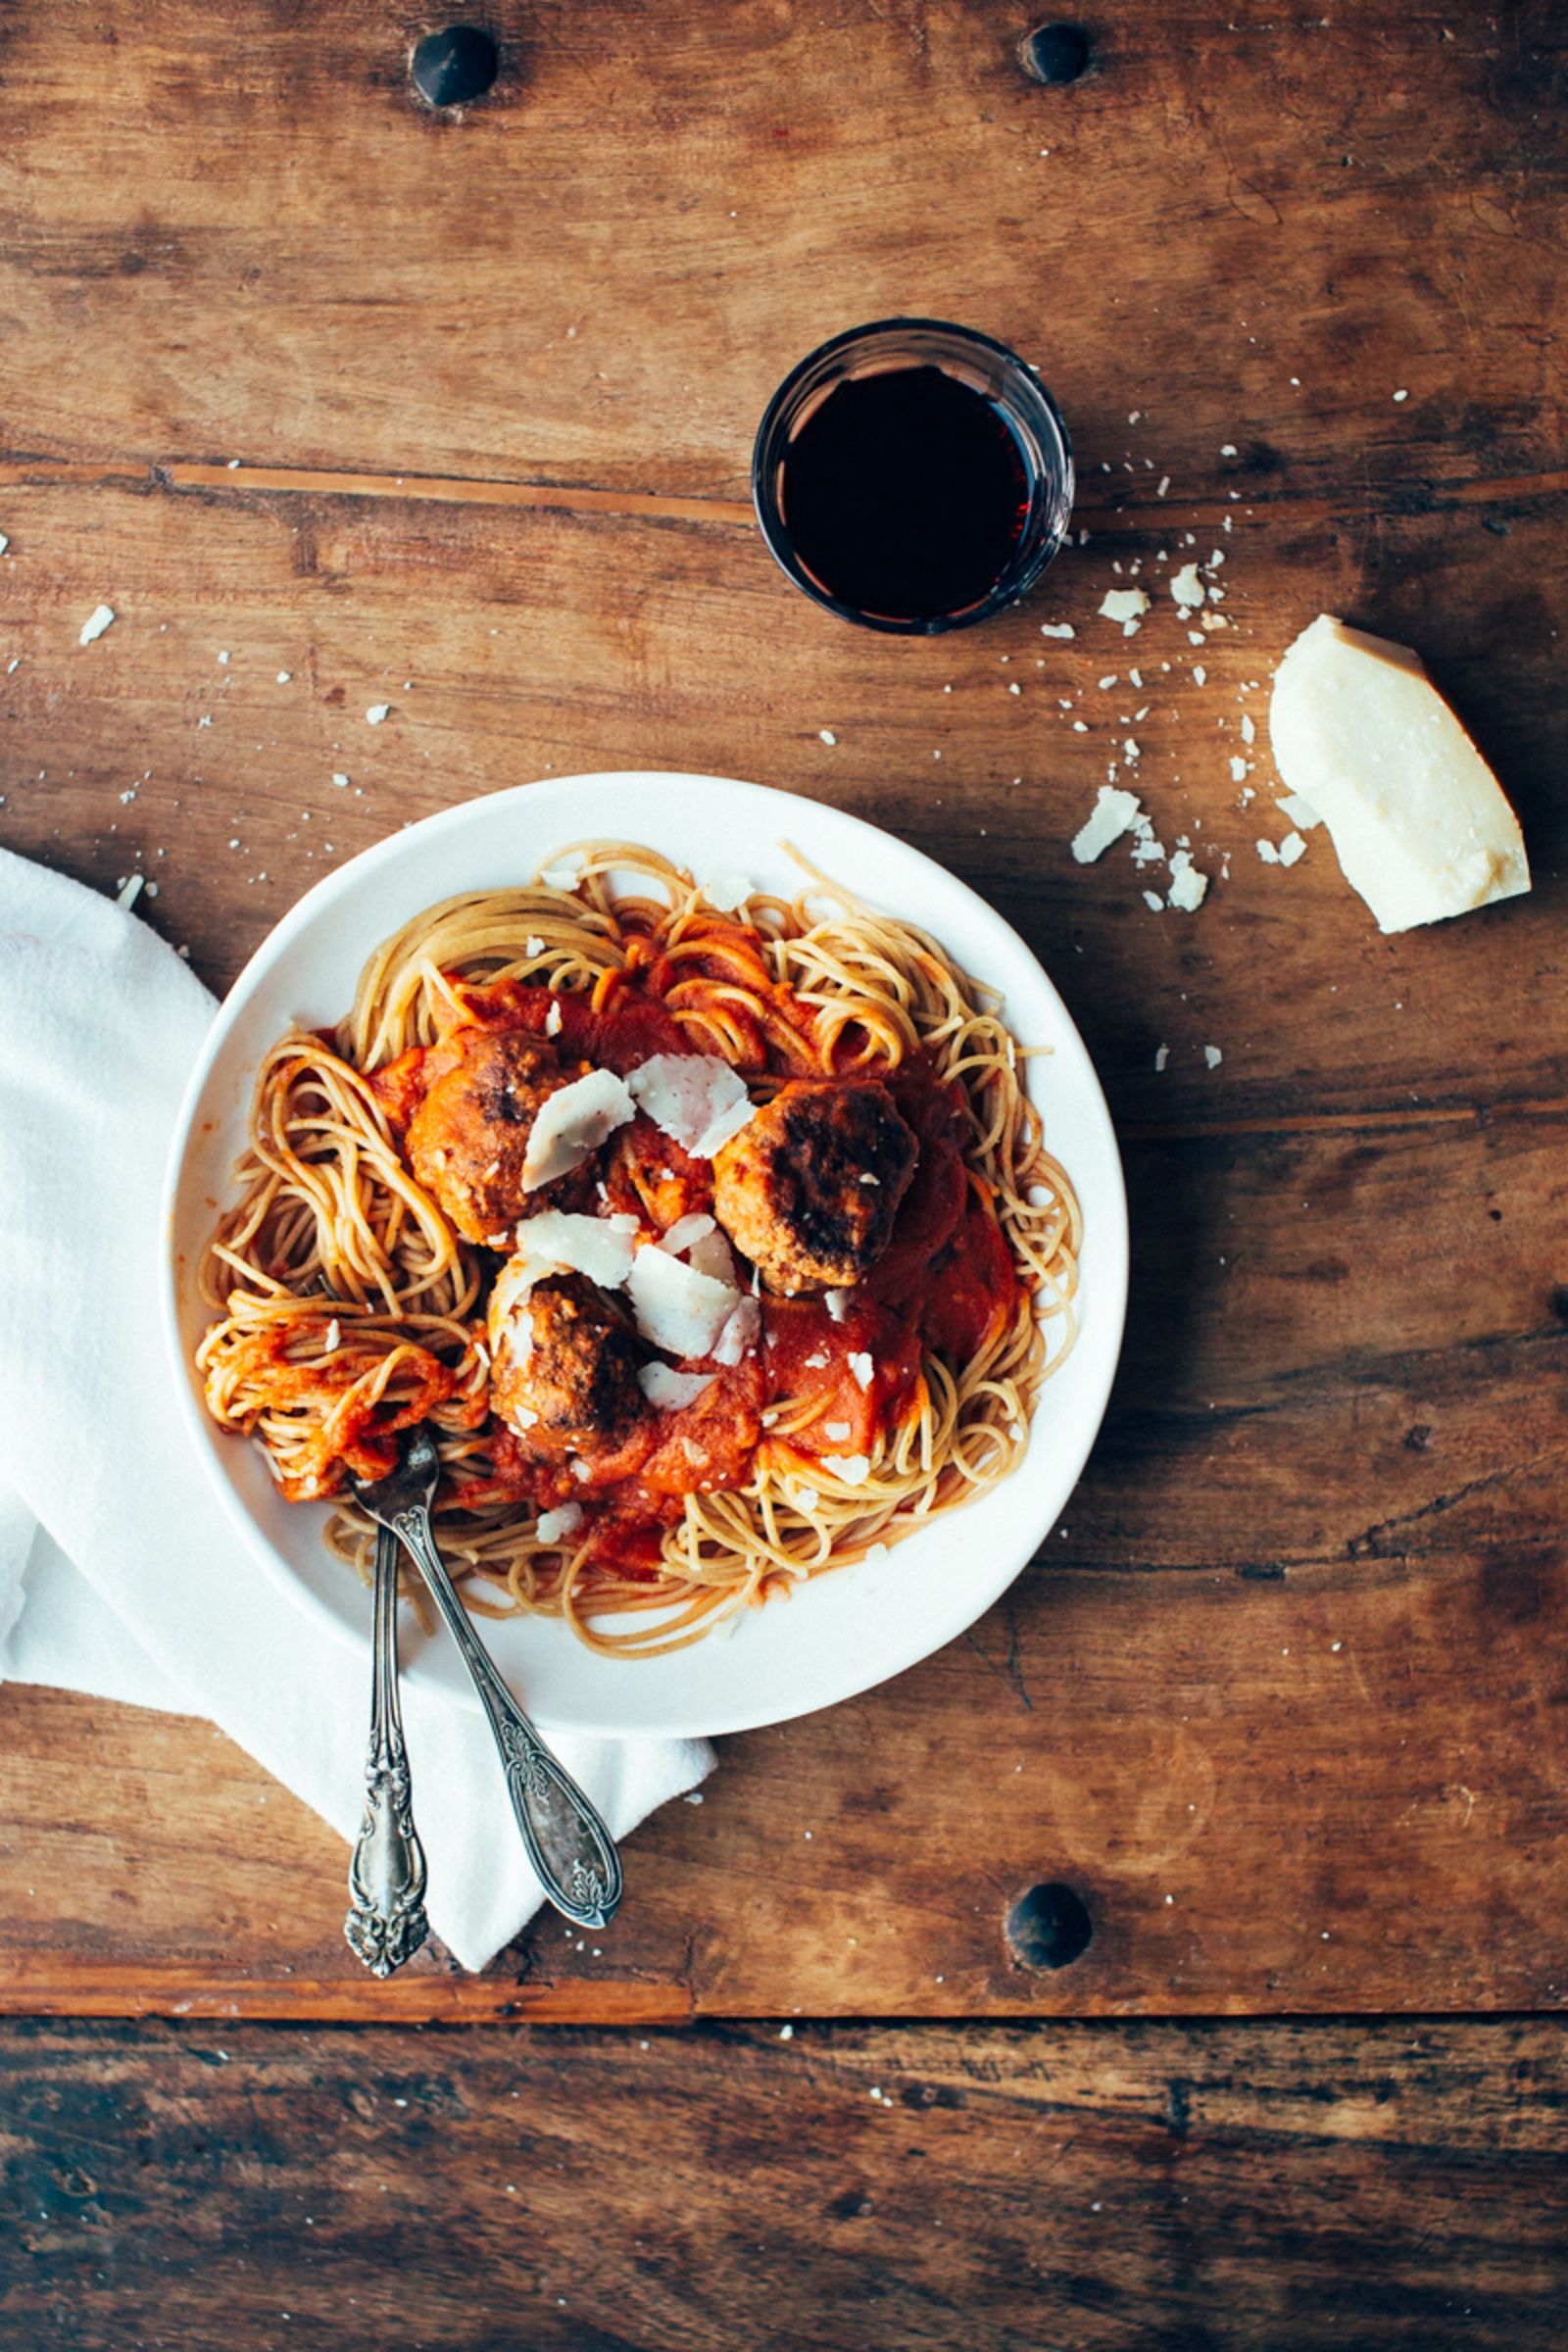 In this hearty, comforting Spaghetti & Meatballs recipe, milk-soaked bread yields the most tender meatballs ever. The sauce is simple and delicious.